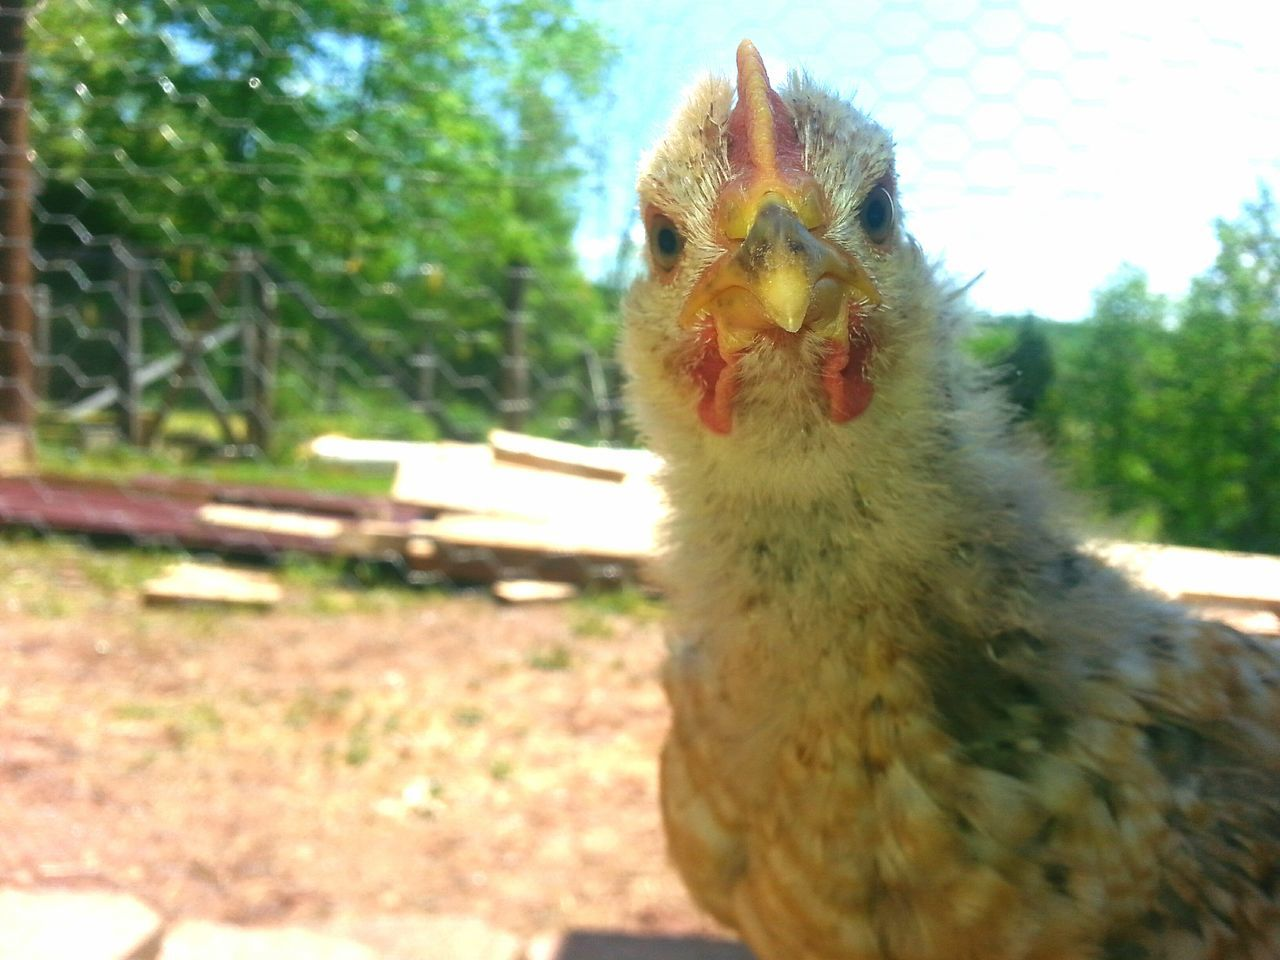 Close-up Alertness Chicken Love Roscoe Baby Roo Galaxy Note 5